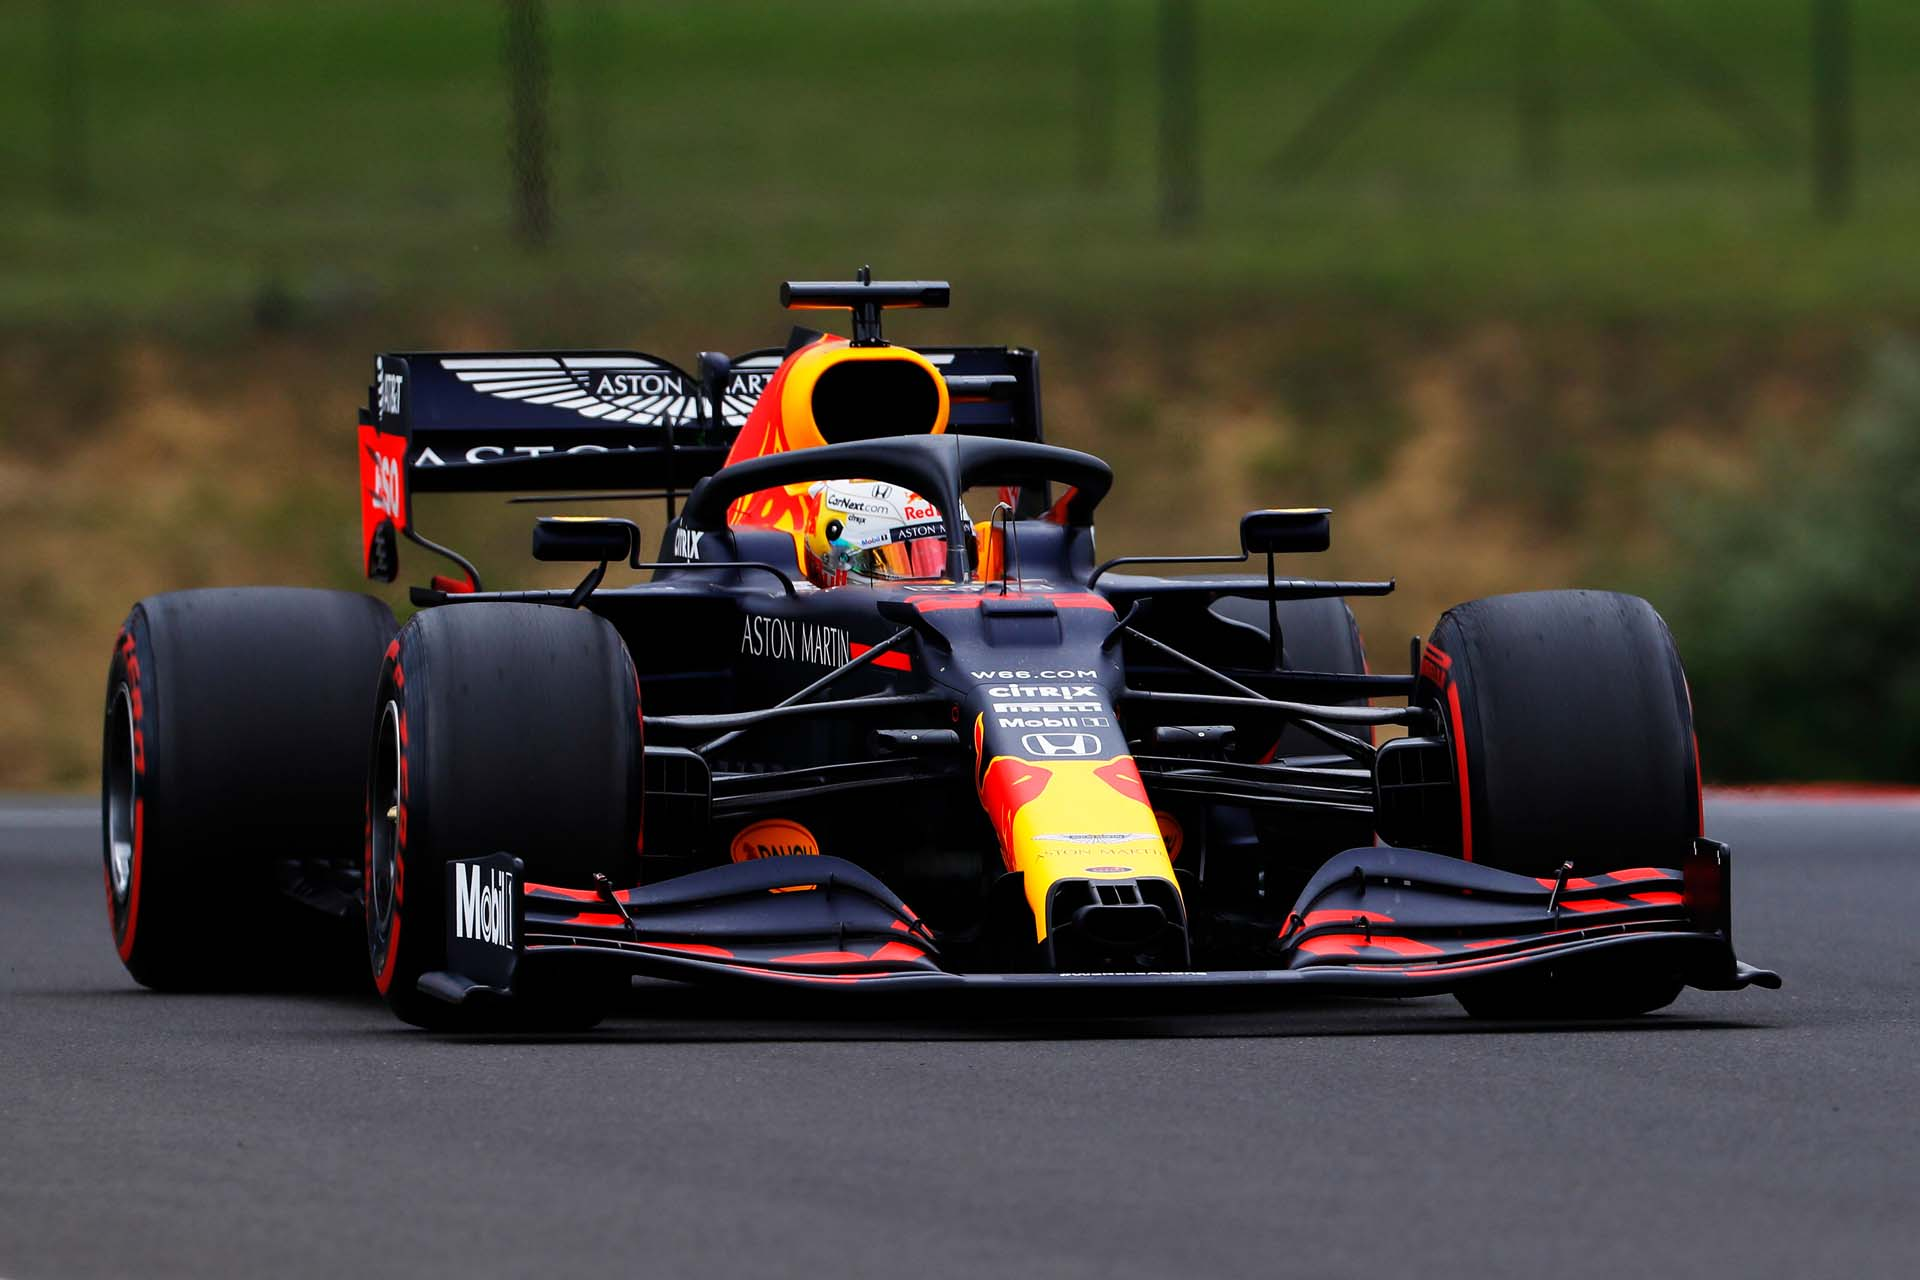 F1 Grand Prix of Hungary - Practice